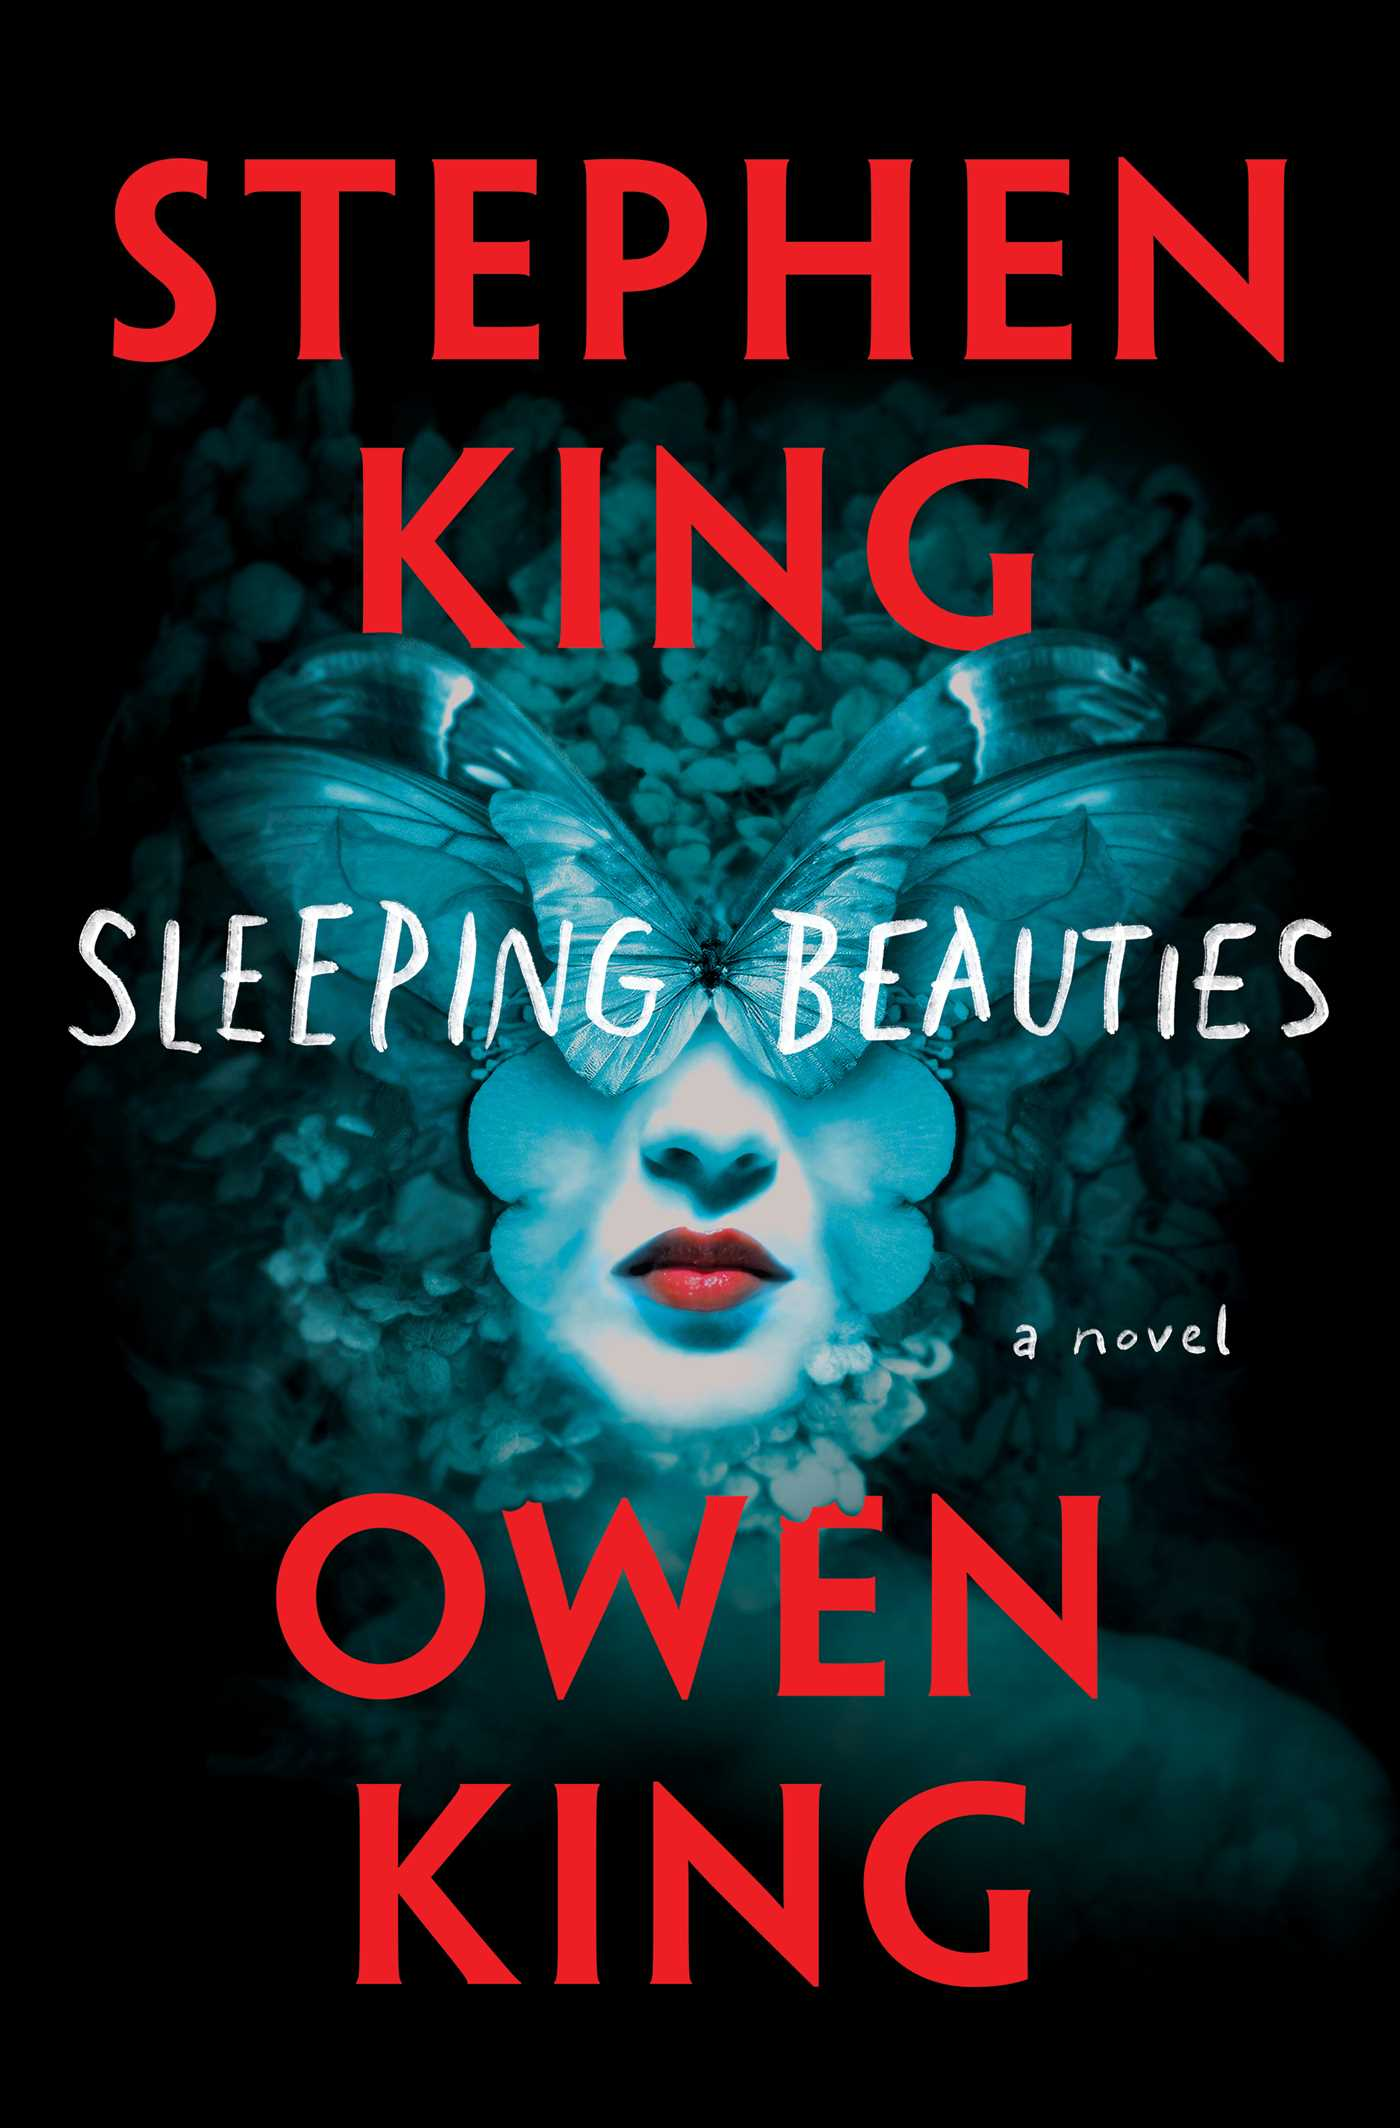 The cover of the book Sleeping Beauties